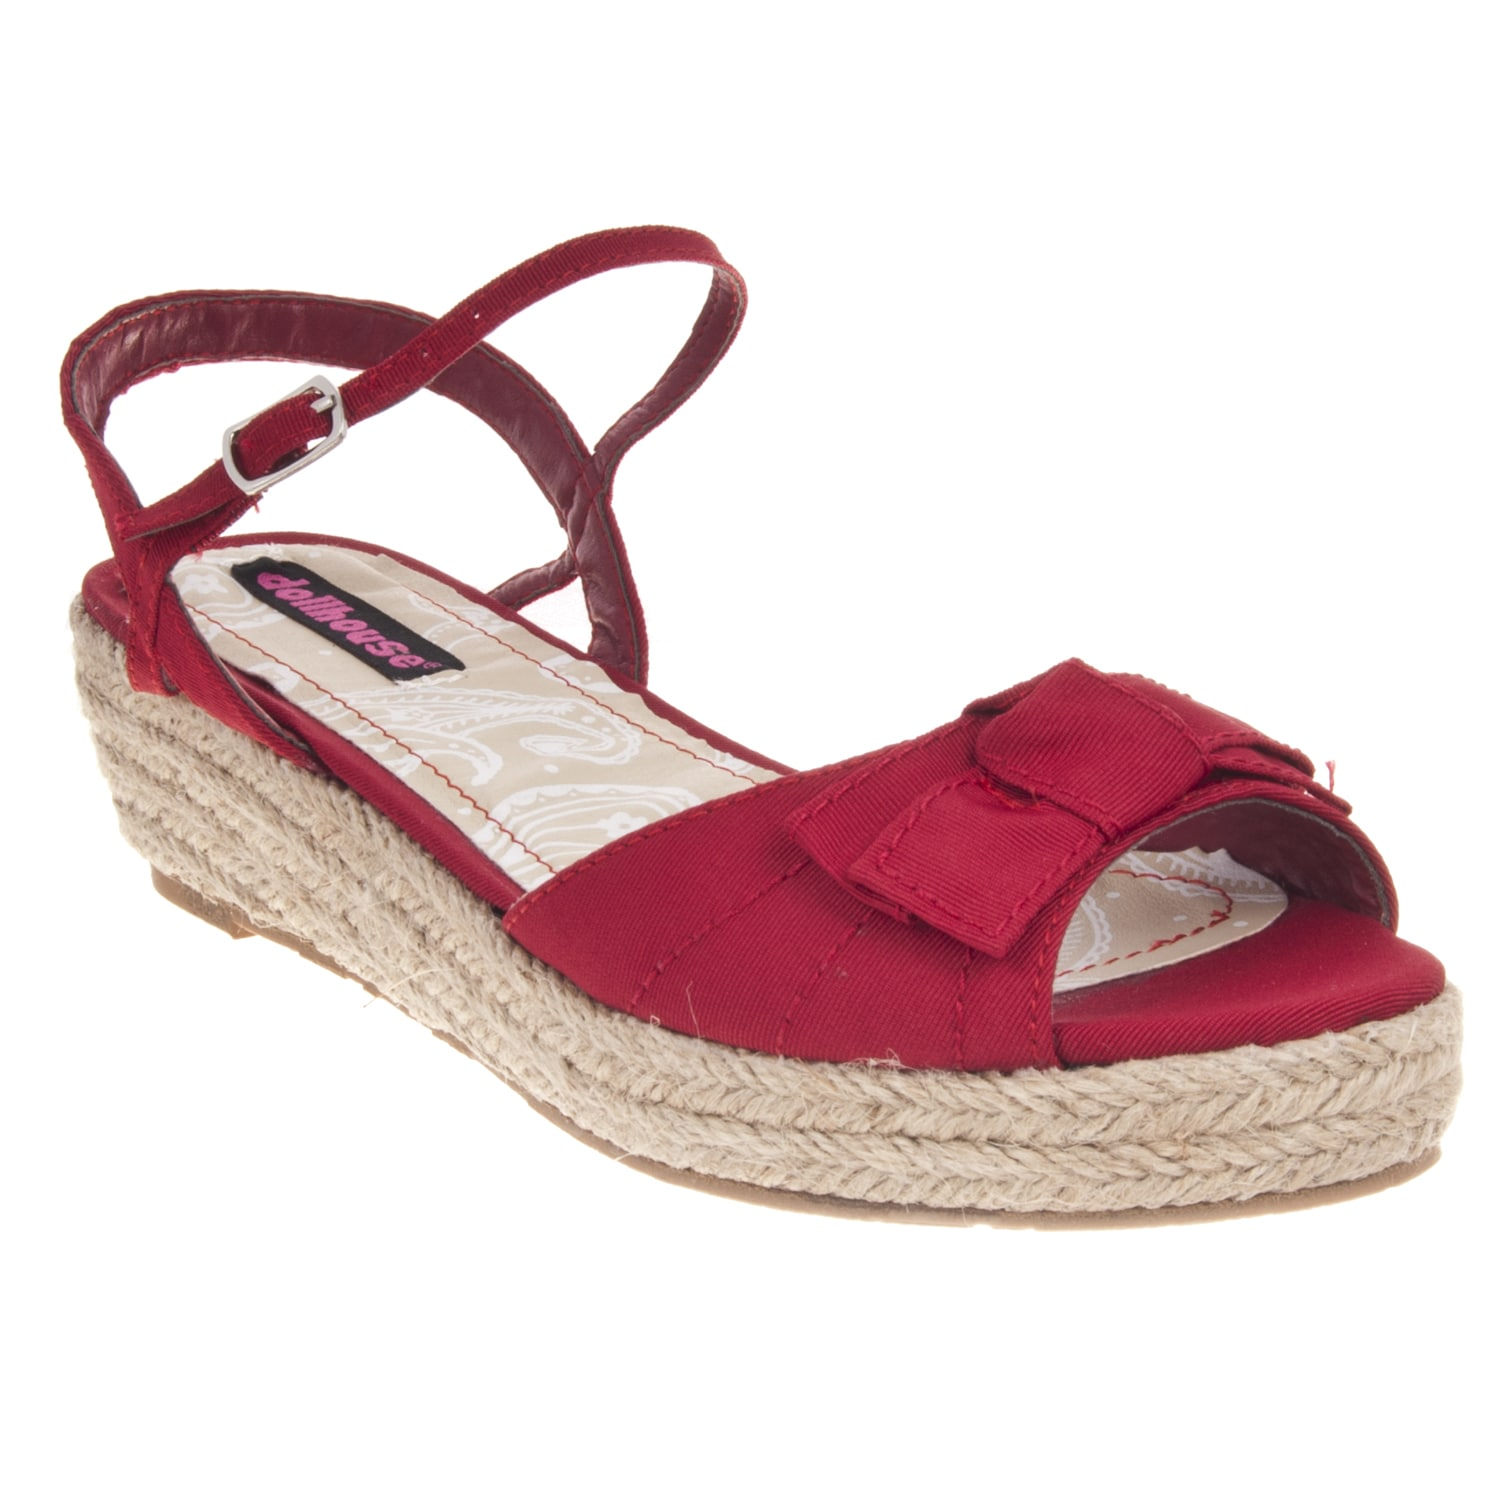 Riverberry Women's 'Quiche' Red Bow-detail Wedge Sandal